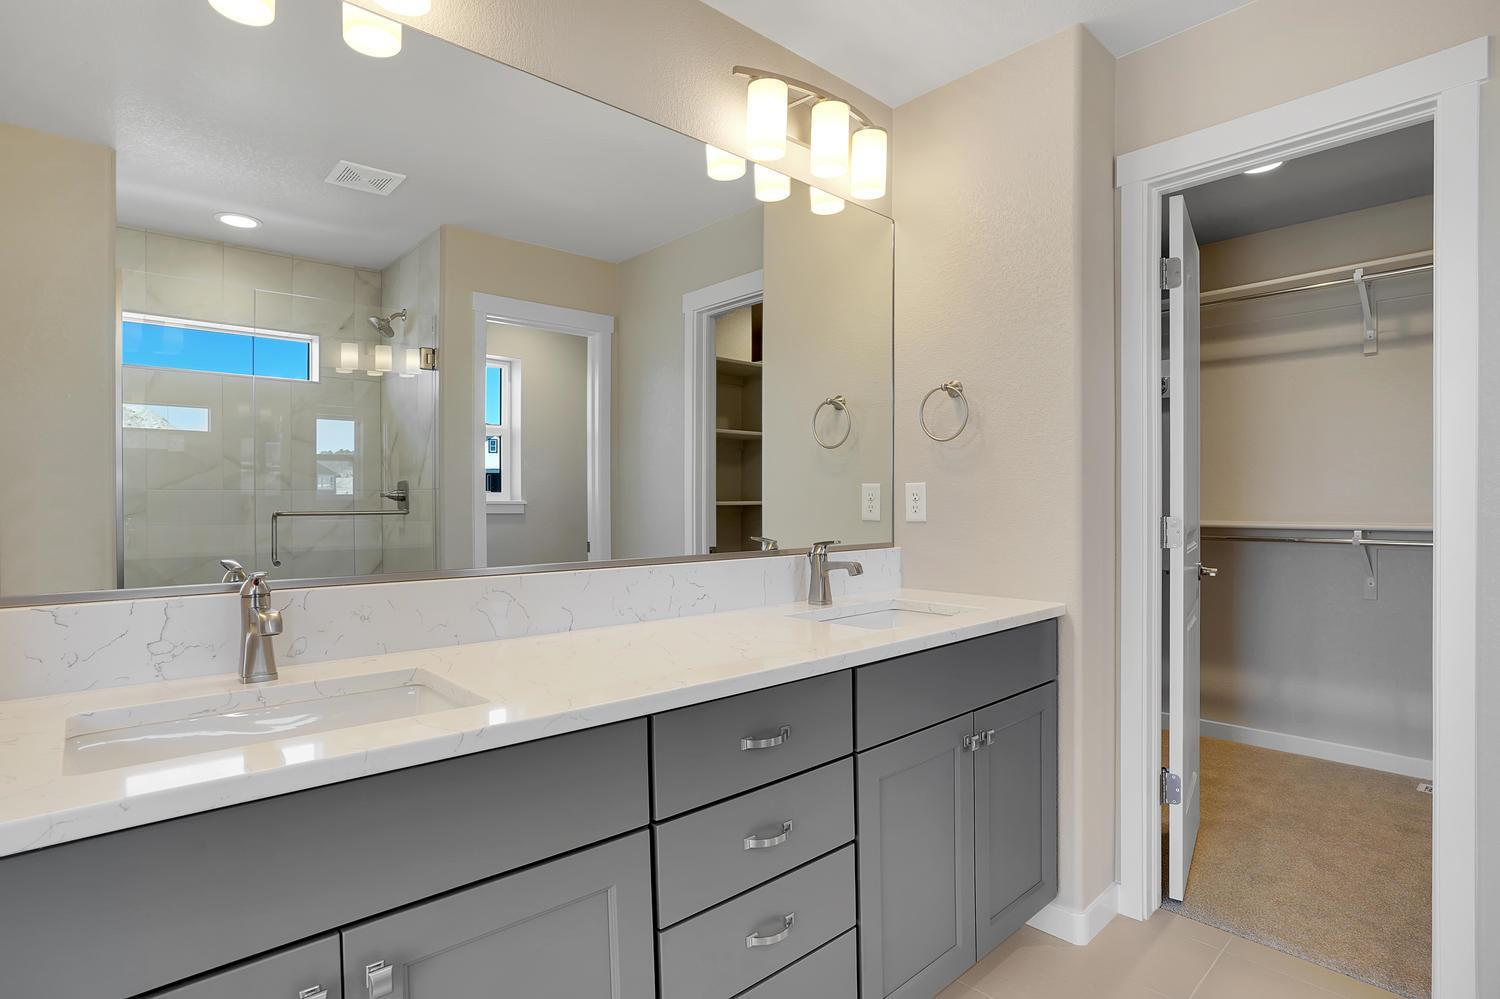 Bathroom featured in the Belford By Keller Homes, A Toll Bros. Co. in Colorado Springs, CO